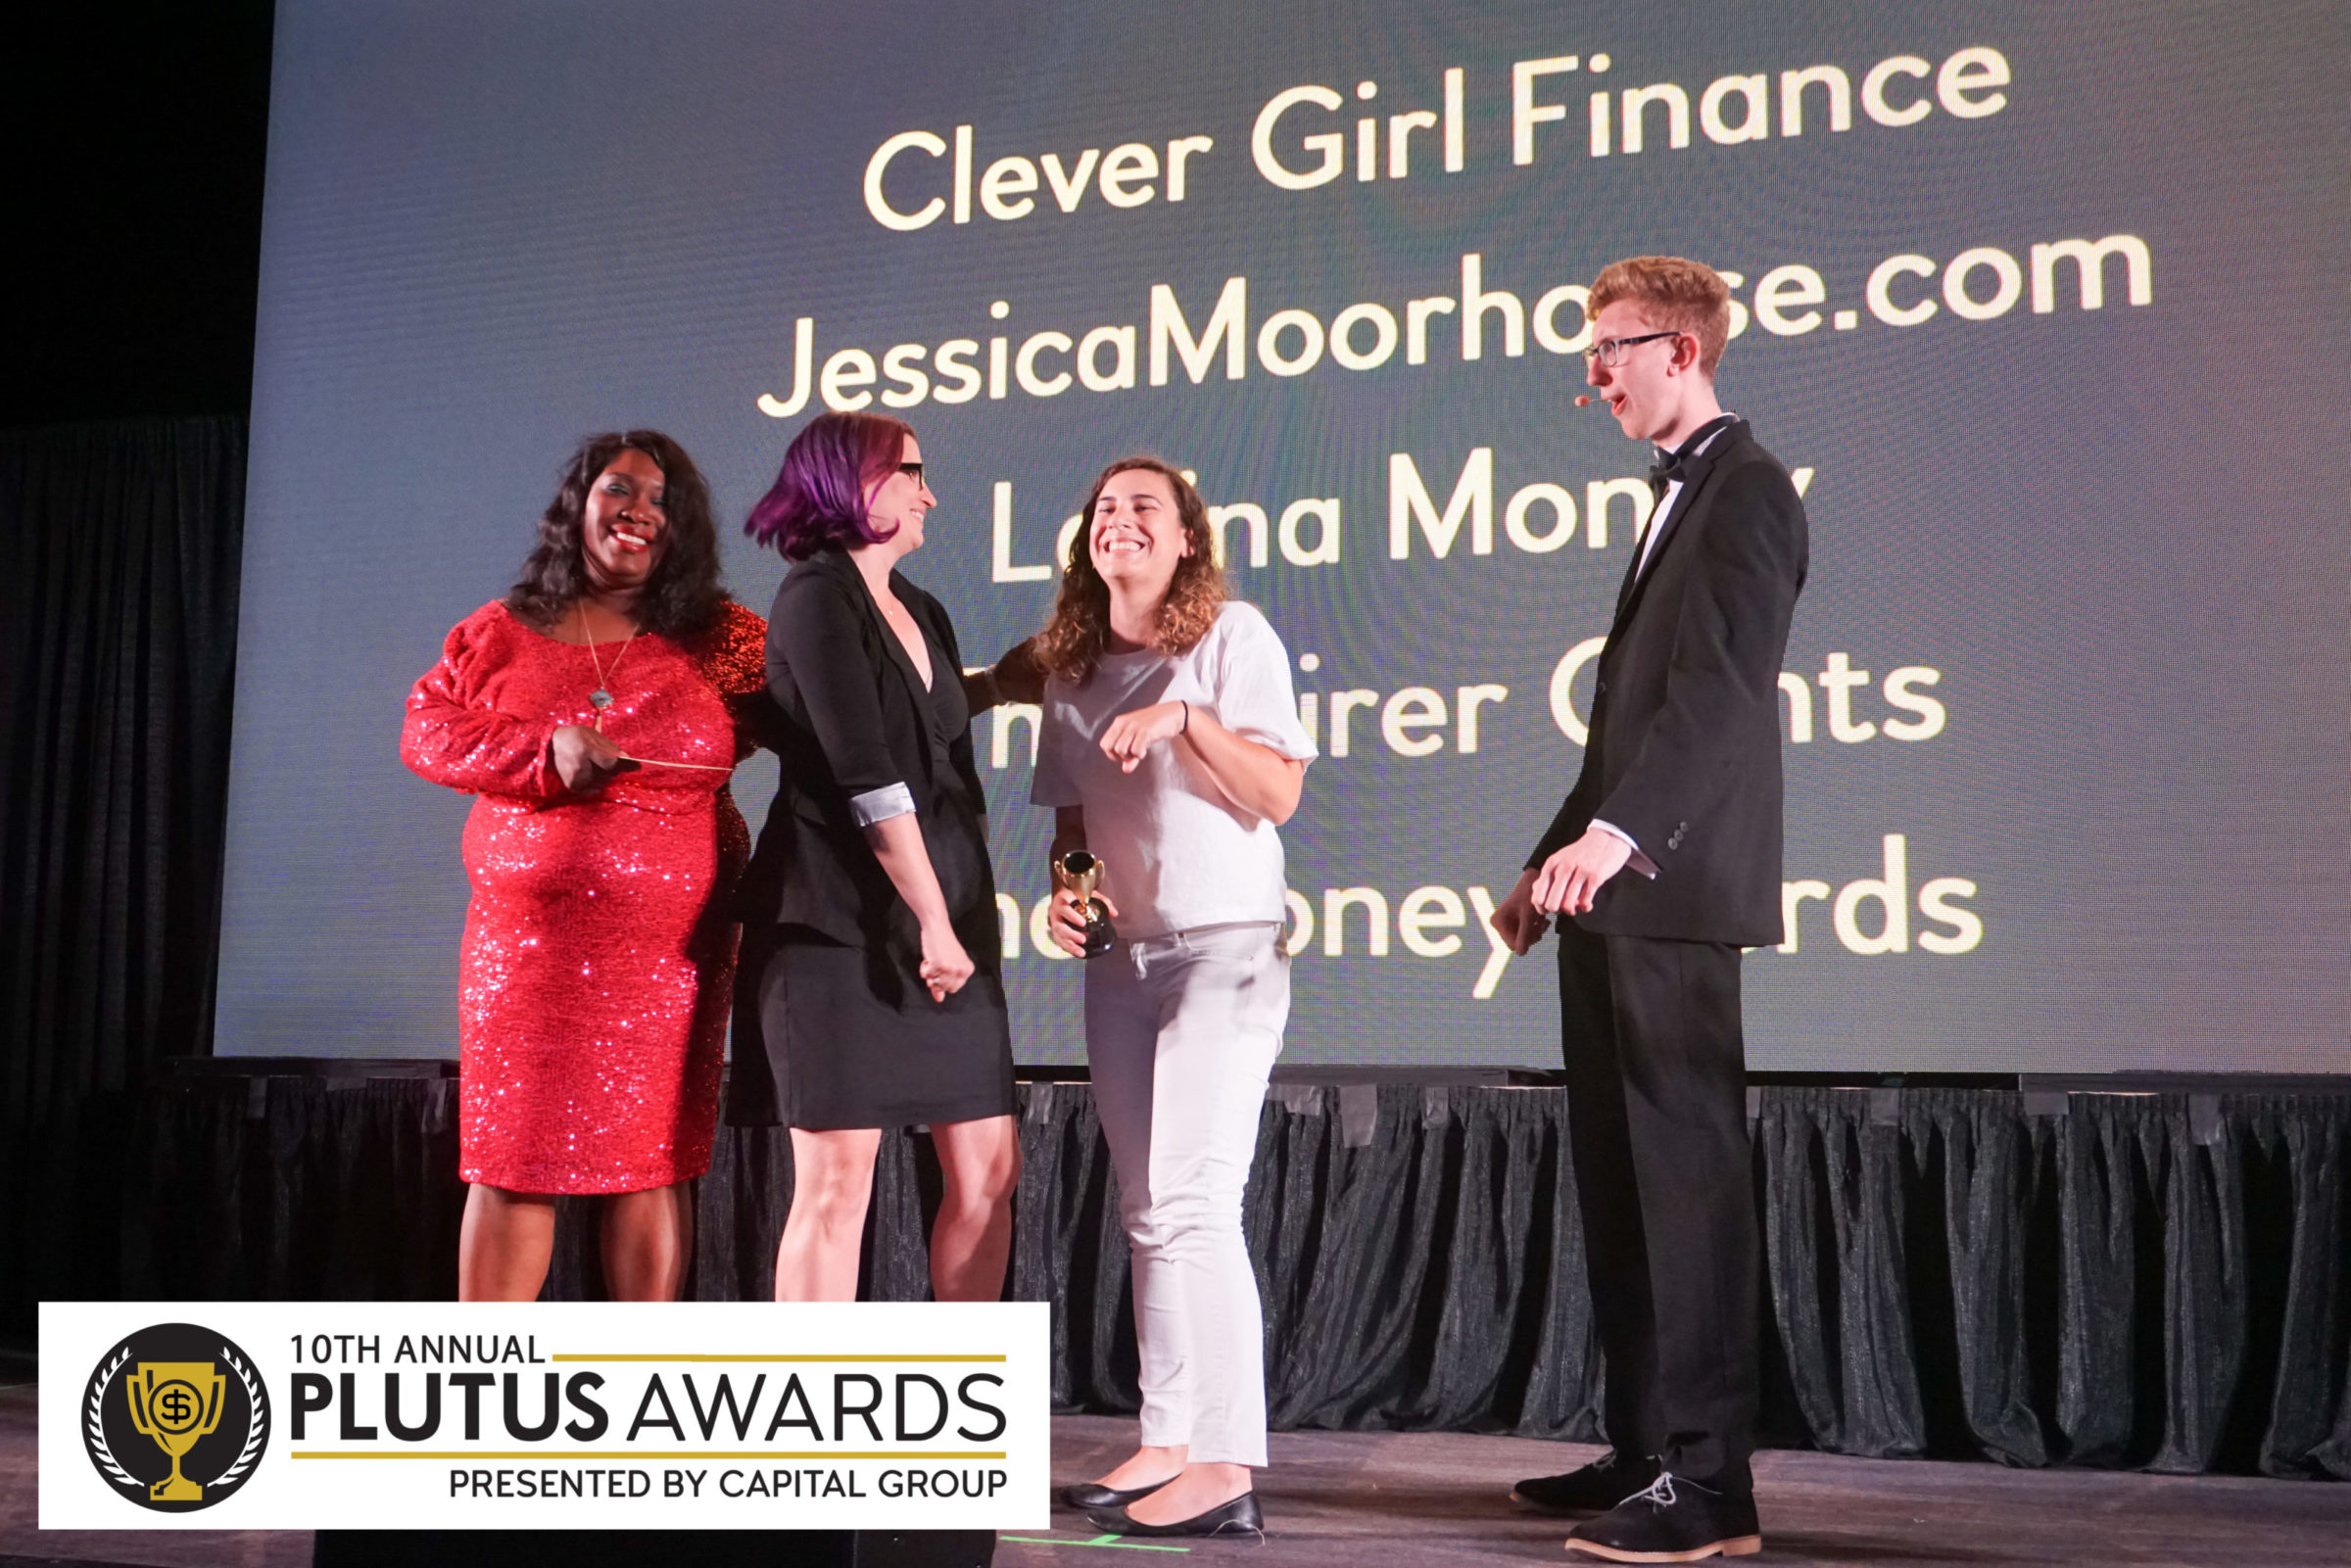 On Stage with the Plutus Awards